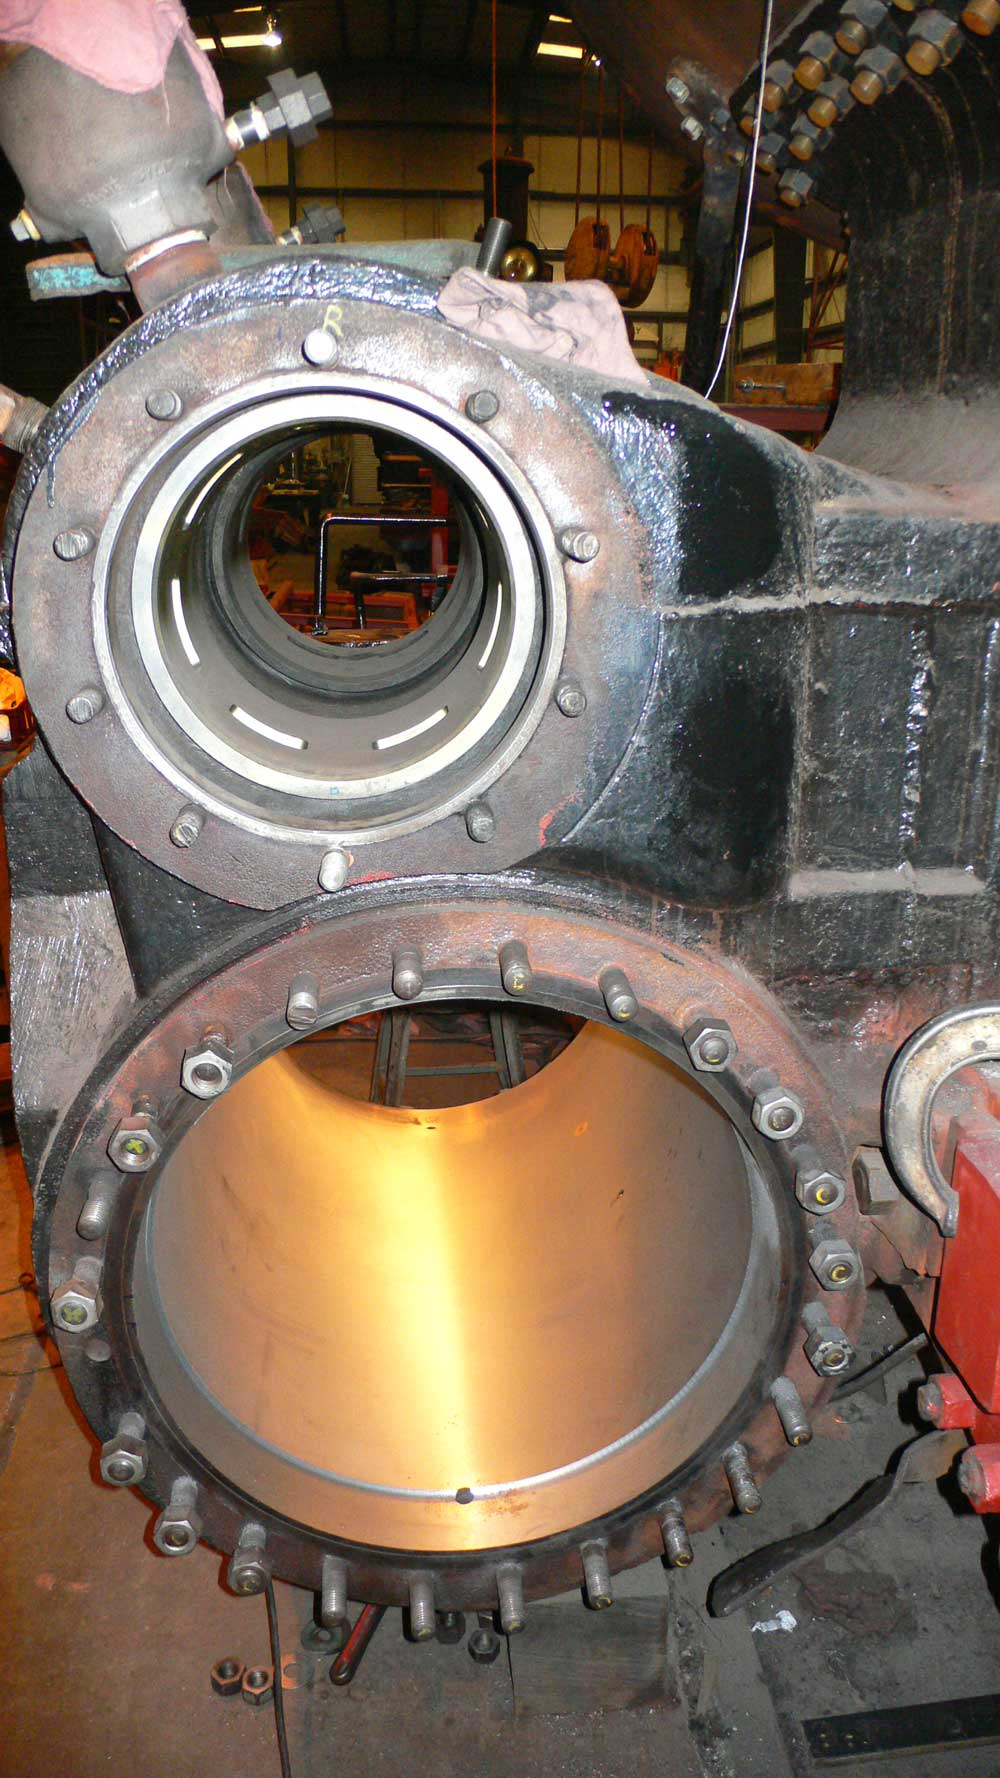 Steam locomotive cylinder and valve liners after having been bored out to a perfect, round finish.